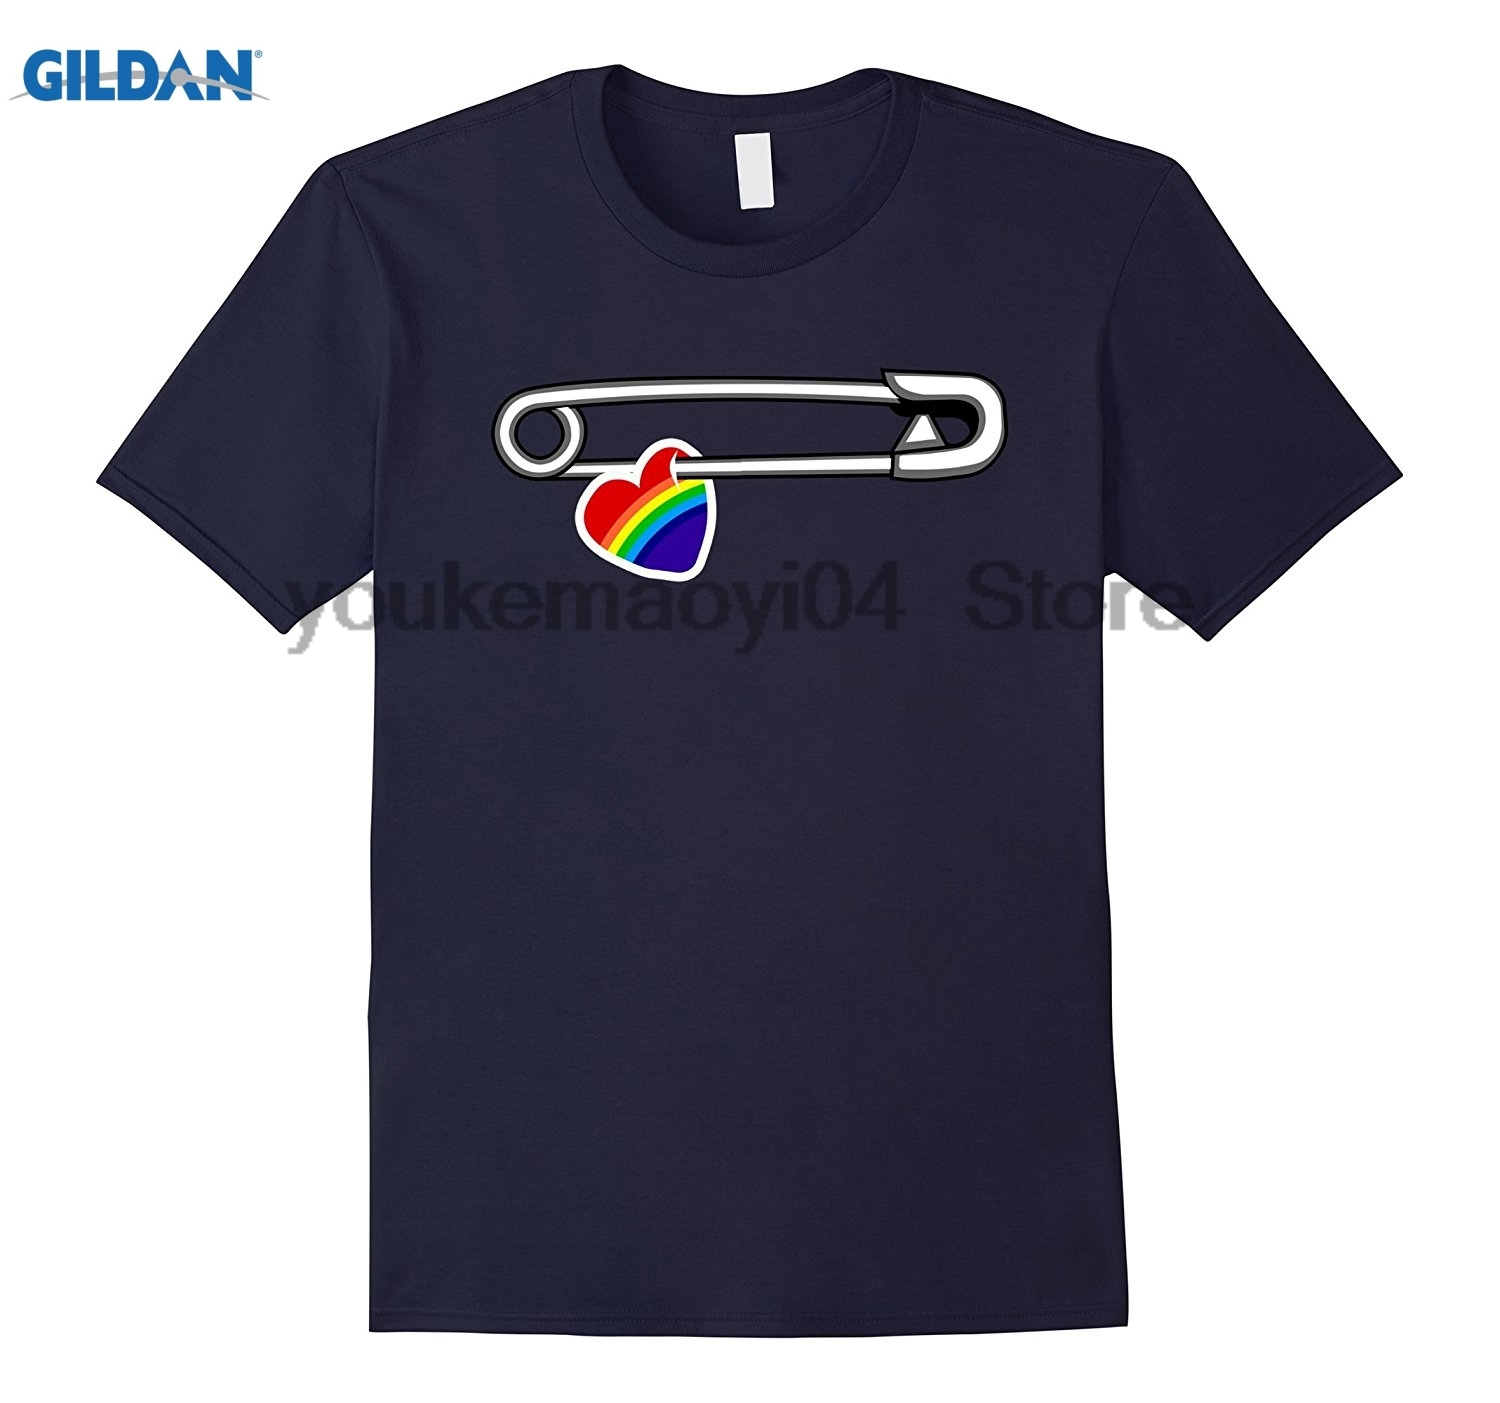 GILDAN Love Trumps Hate Safety Pin For Peace And Solidarity T-Shirt Personalized shirts are simple